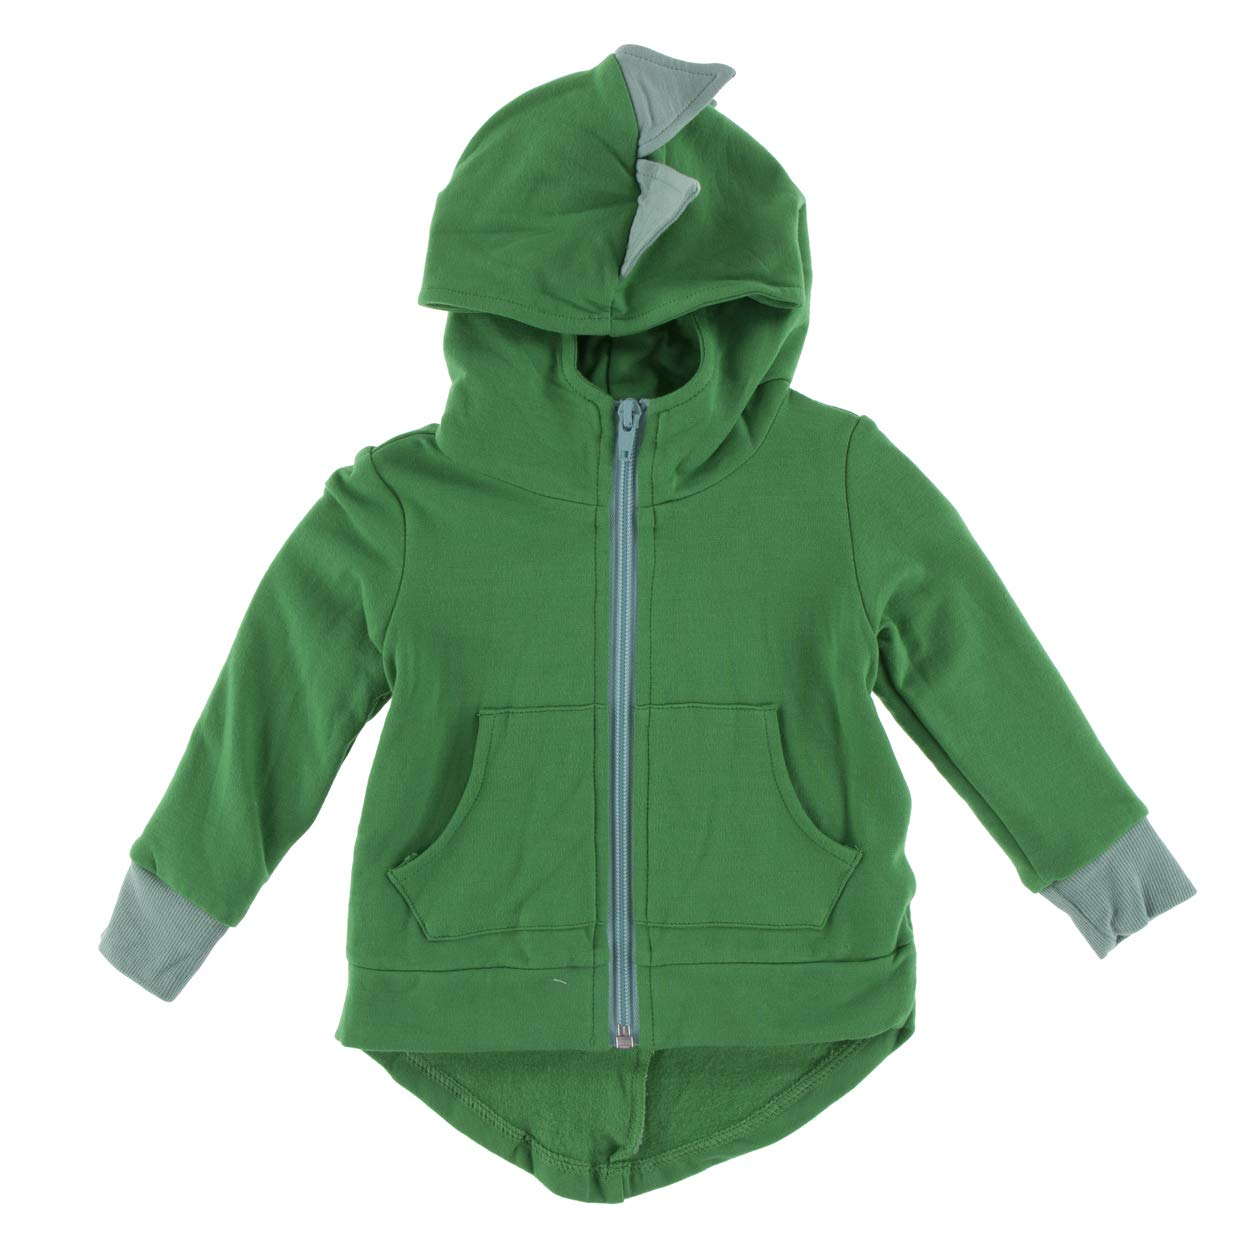 Kickee Pants Little Boys Solid Fleece Zip-Front Dino Hoodie - Fern with Shore, 6-12 Months by Kickee Pants